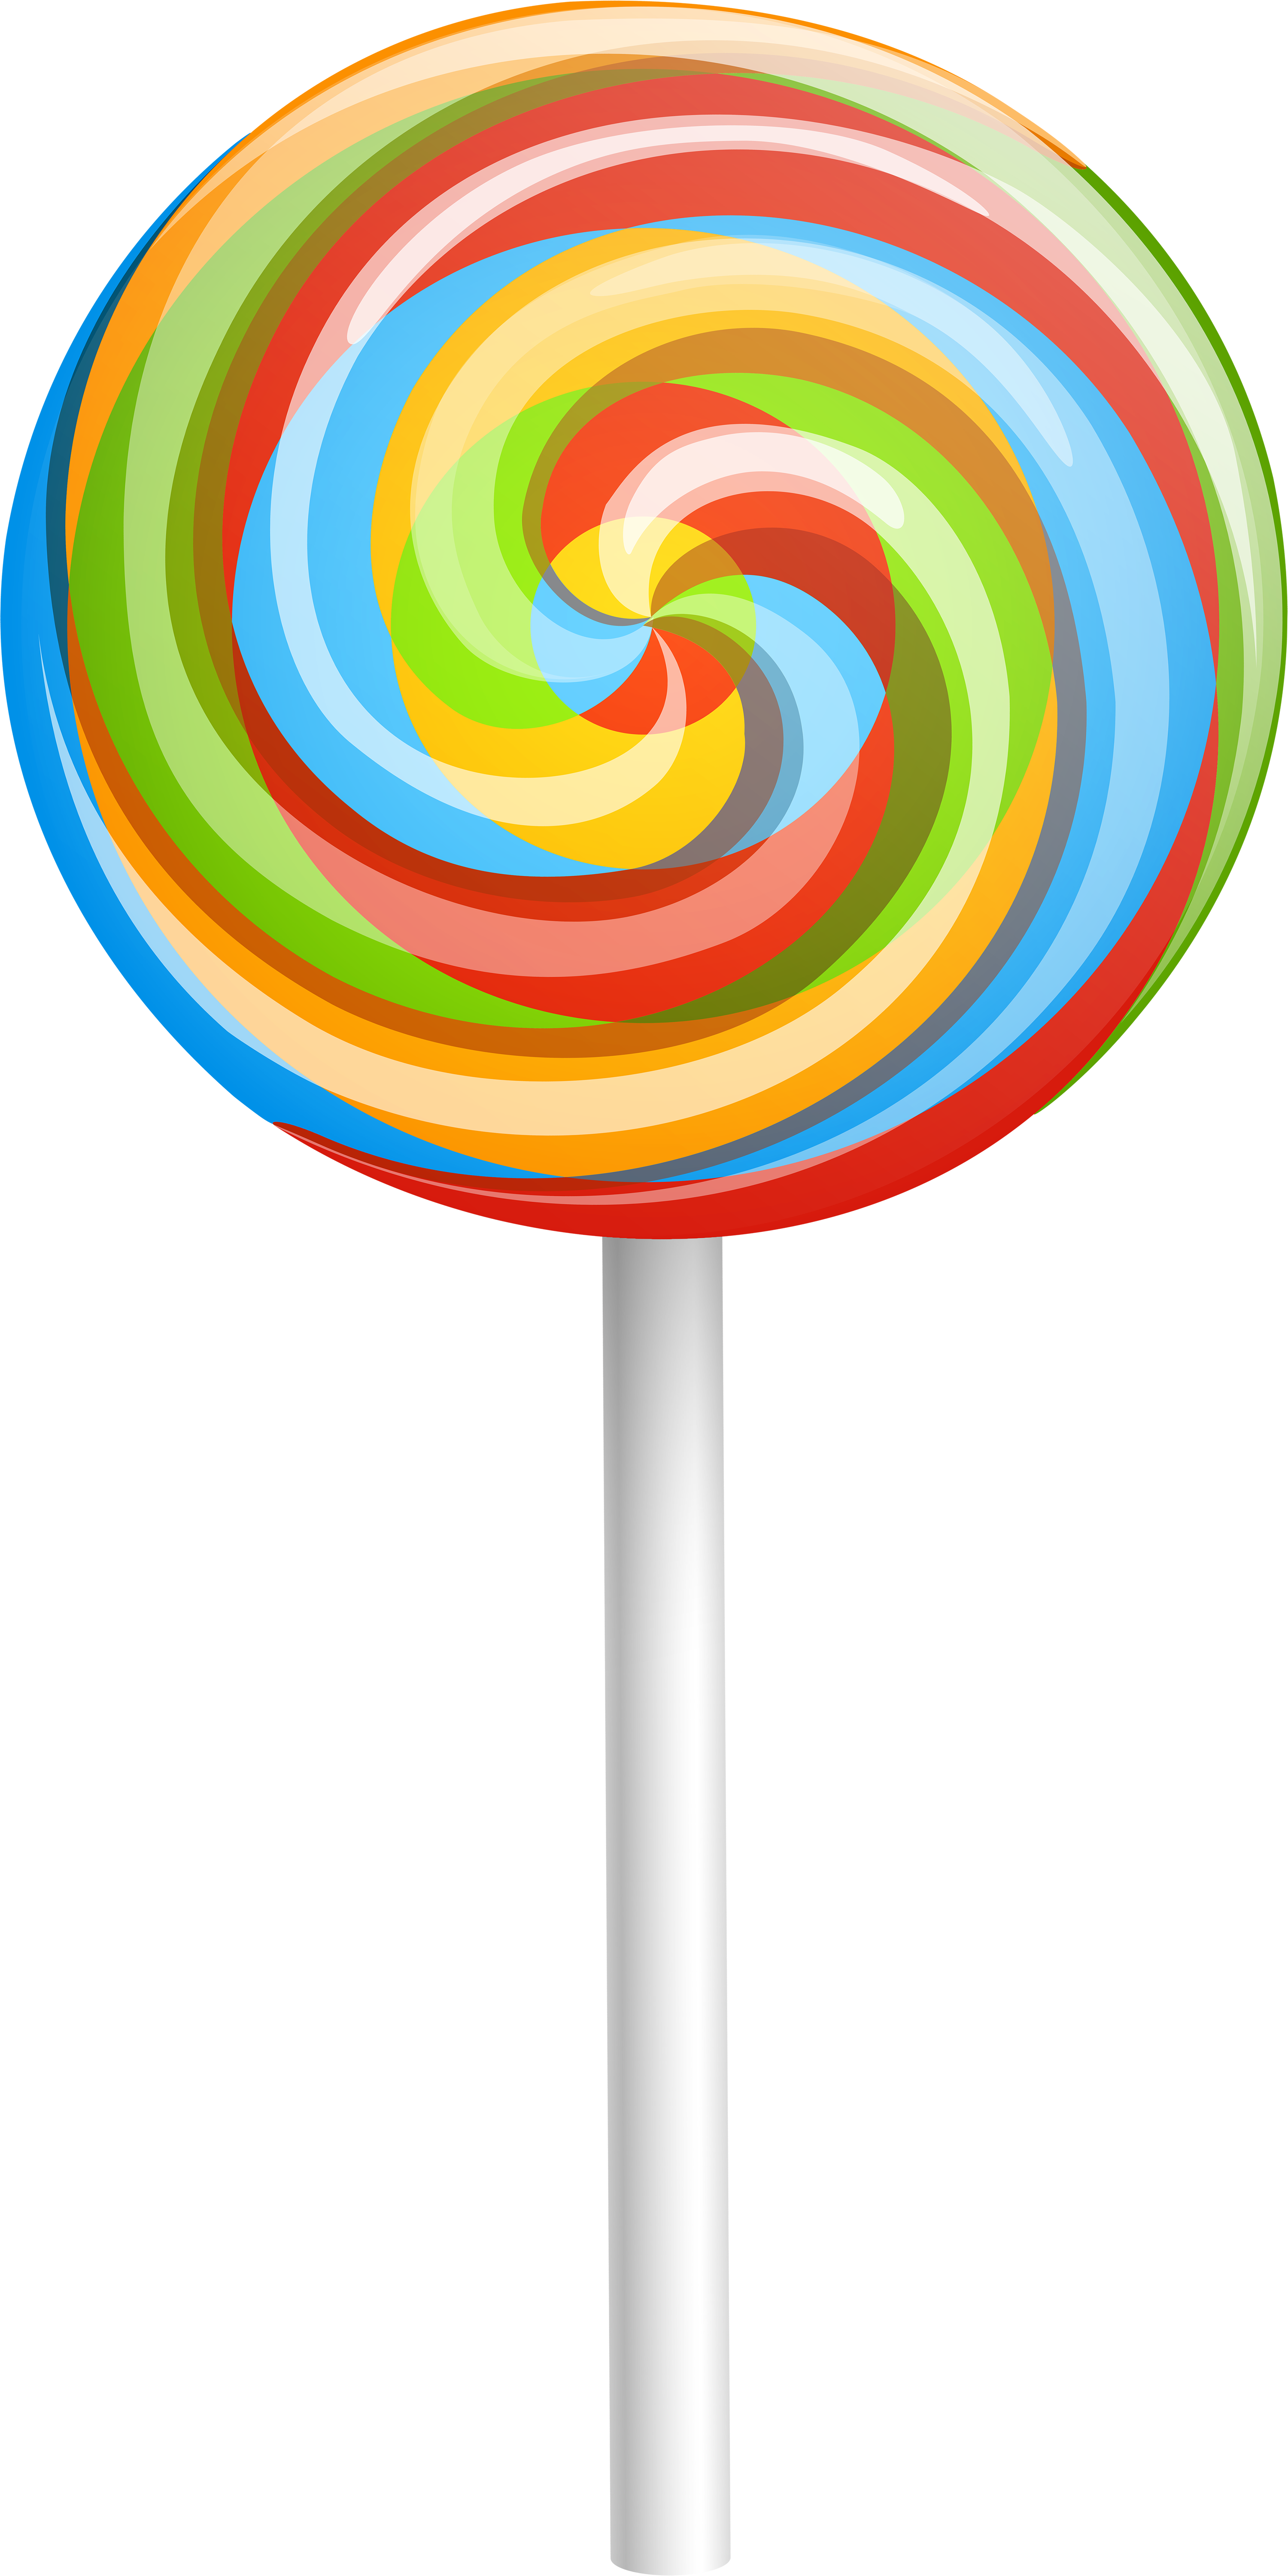 Png lollipop. Images free download chupa